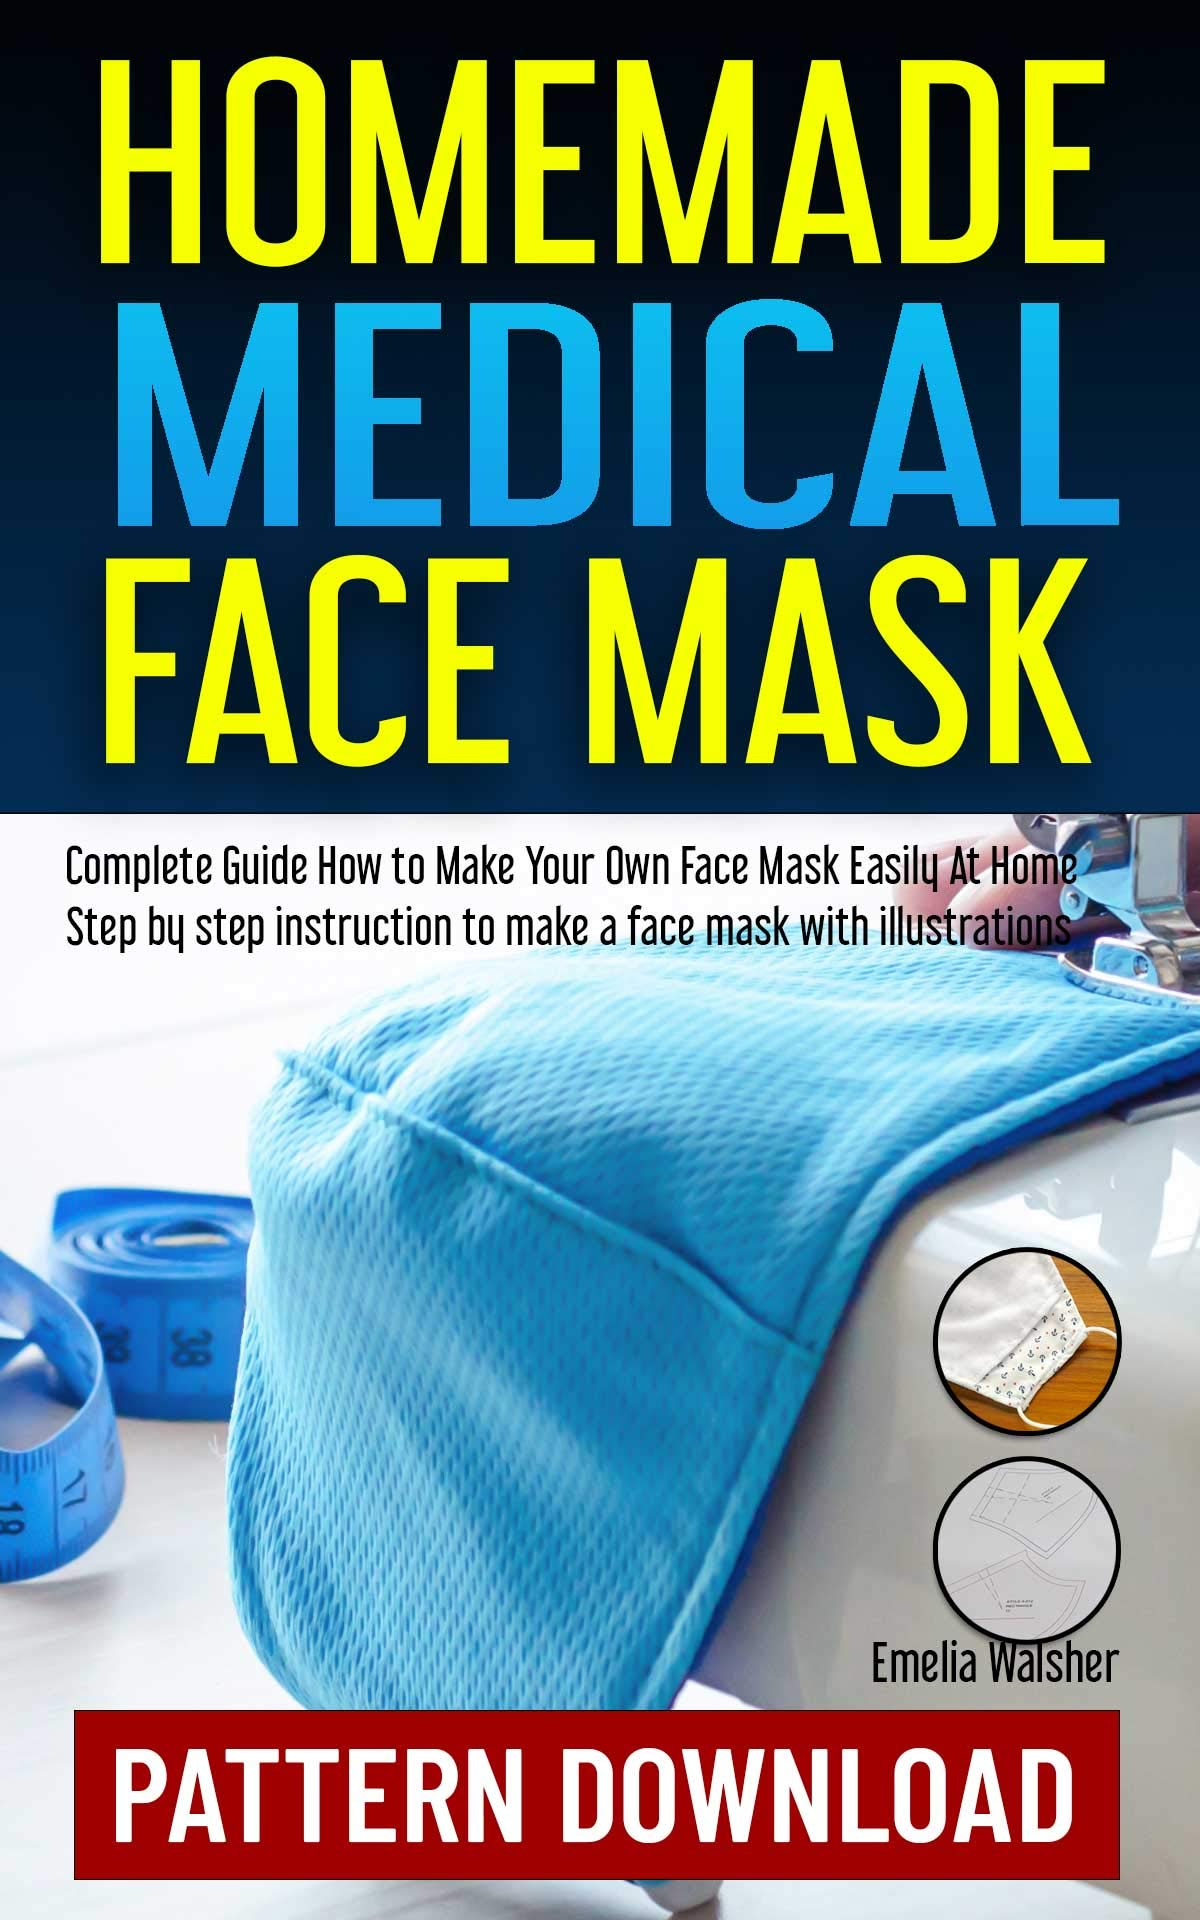 HOMEMADE MEDICAL FACE MASK SEWING PATTERN PDF DOWNLOADStep by Step instruction to make a face mask with illustration